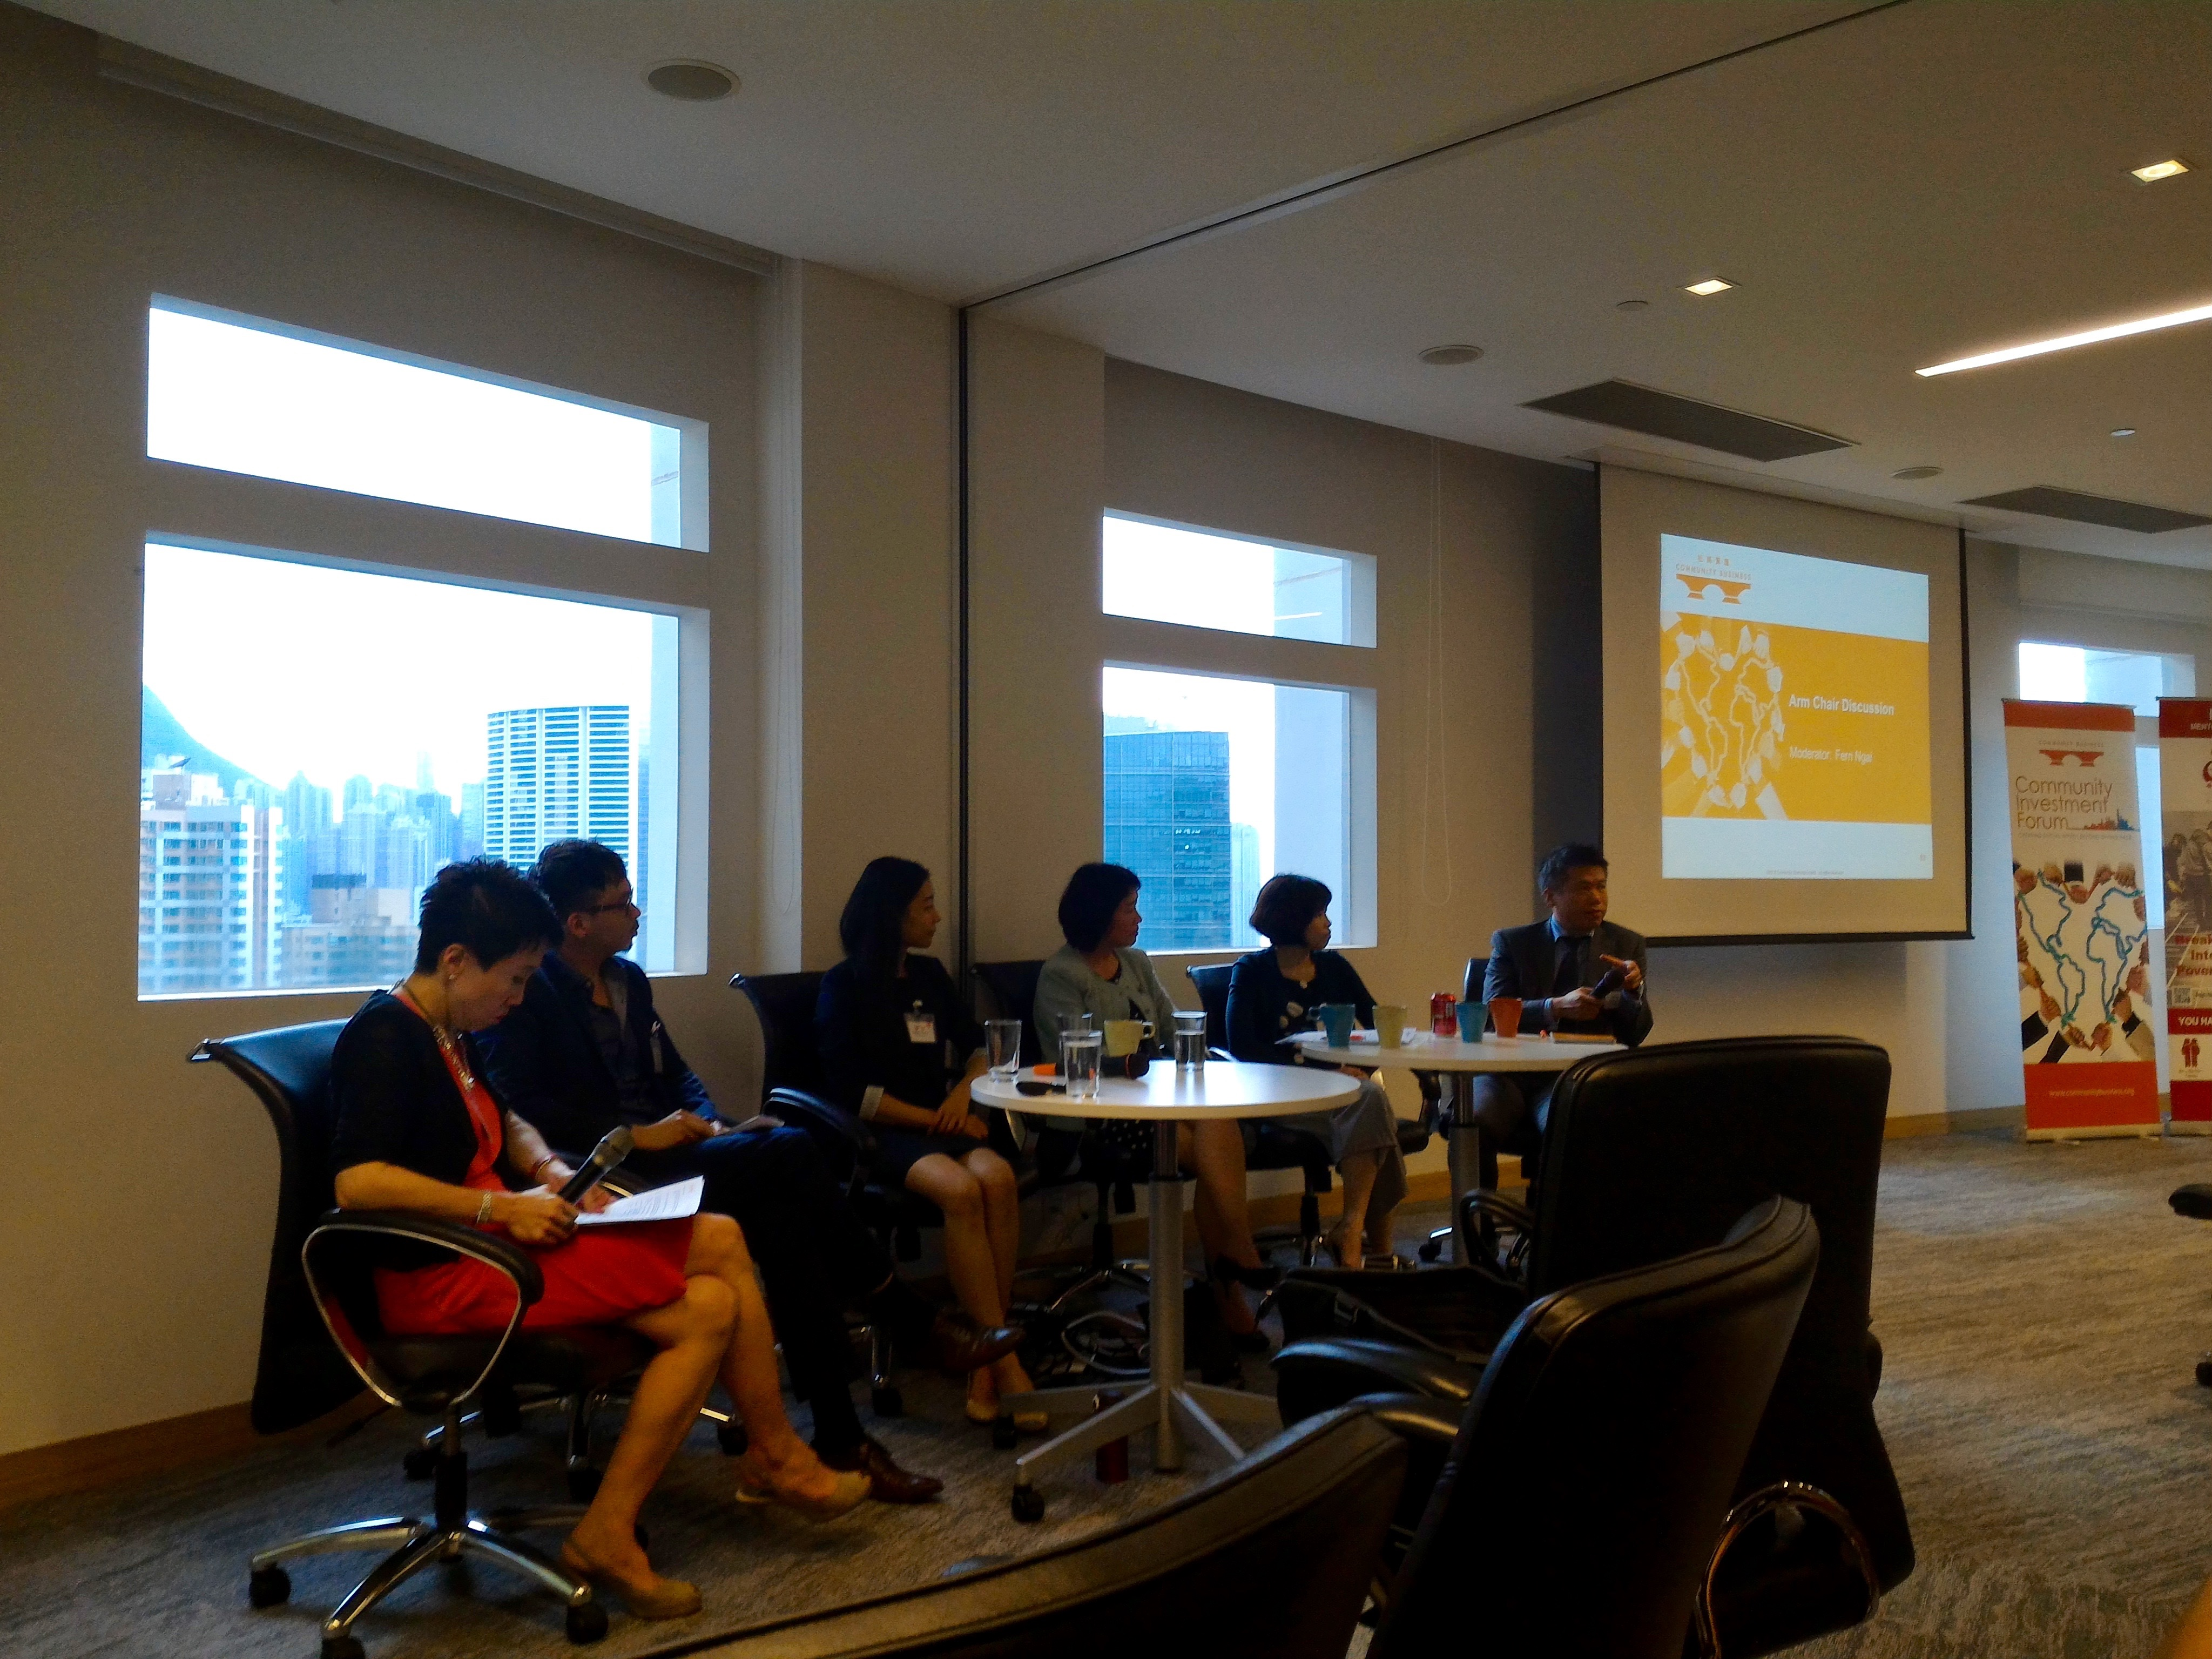 Panelists discuss sustainability in Hong Kong